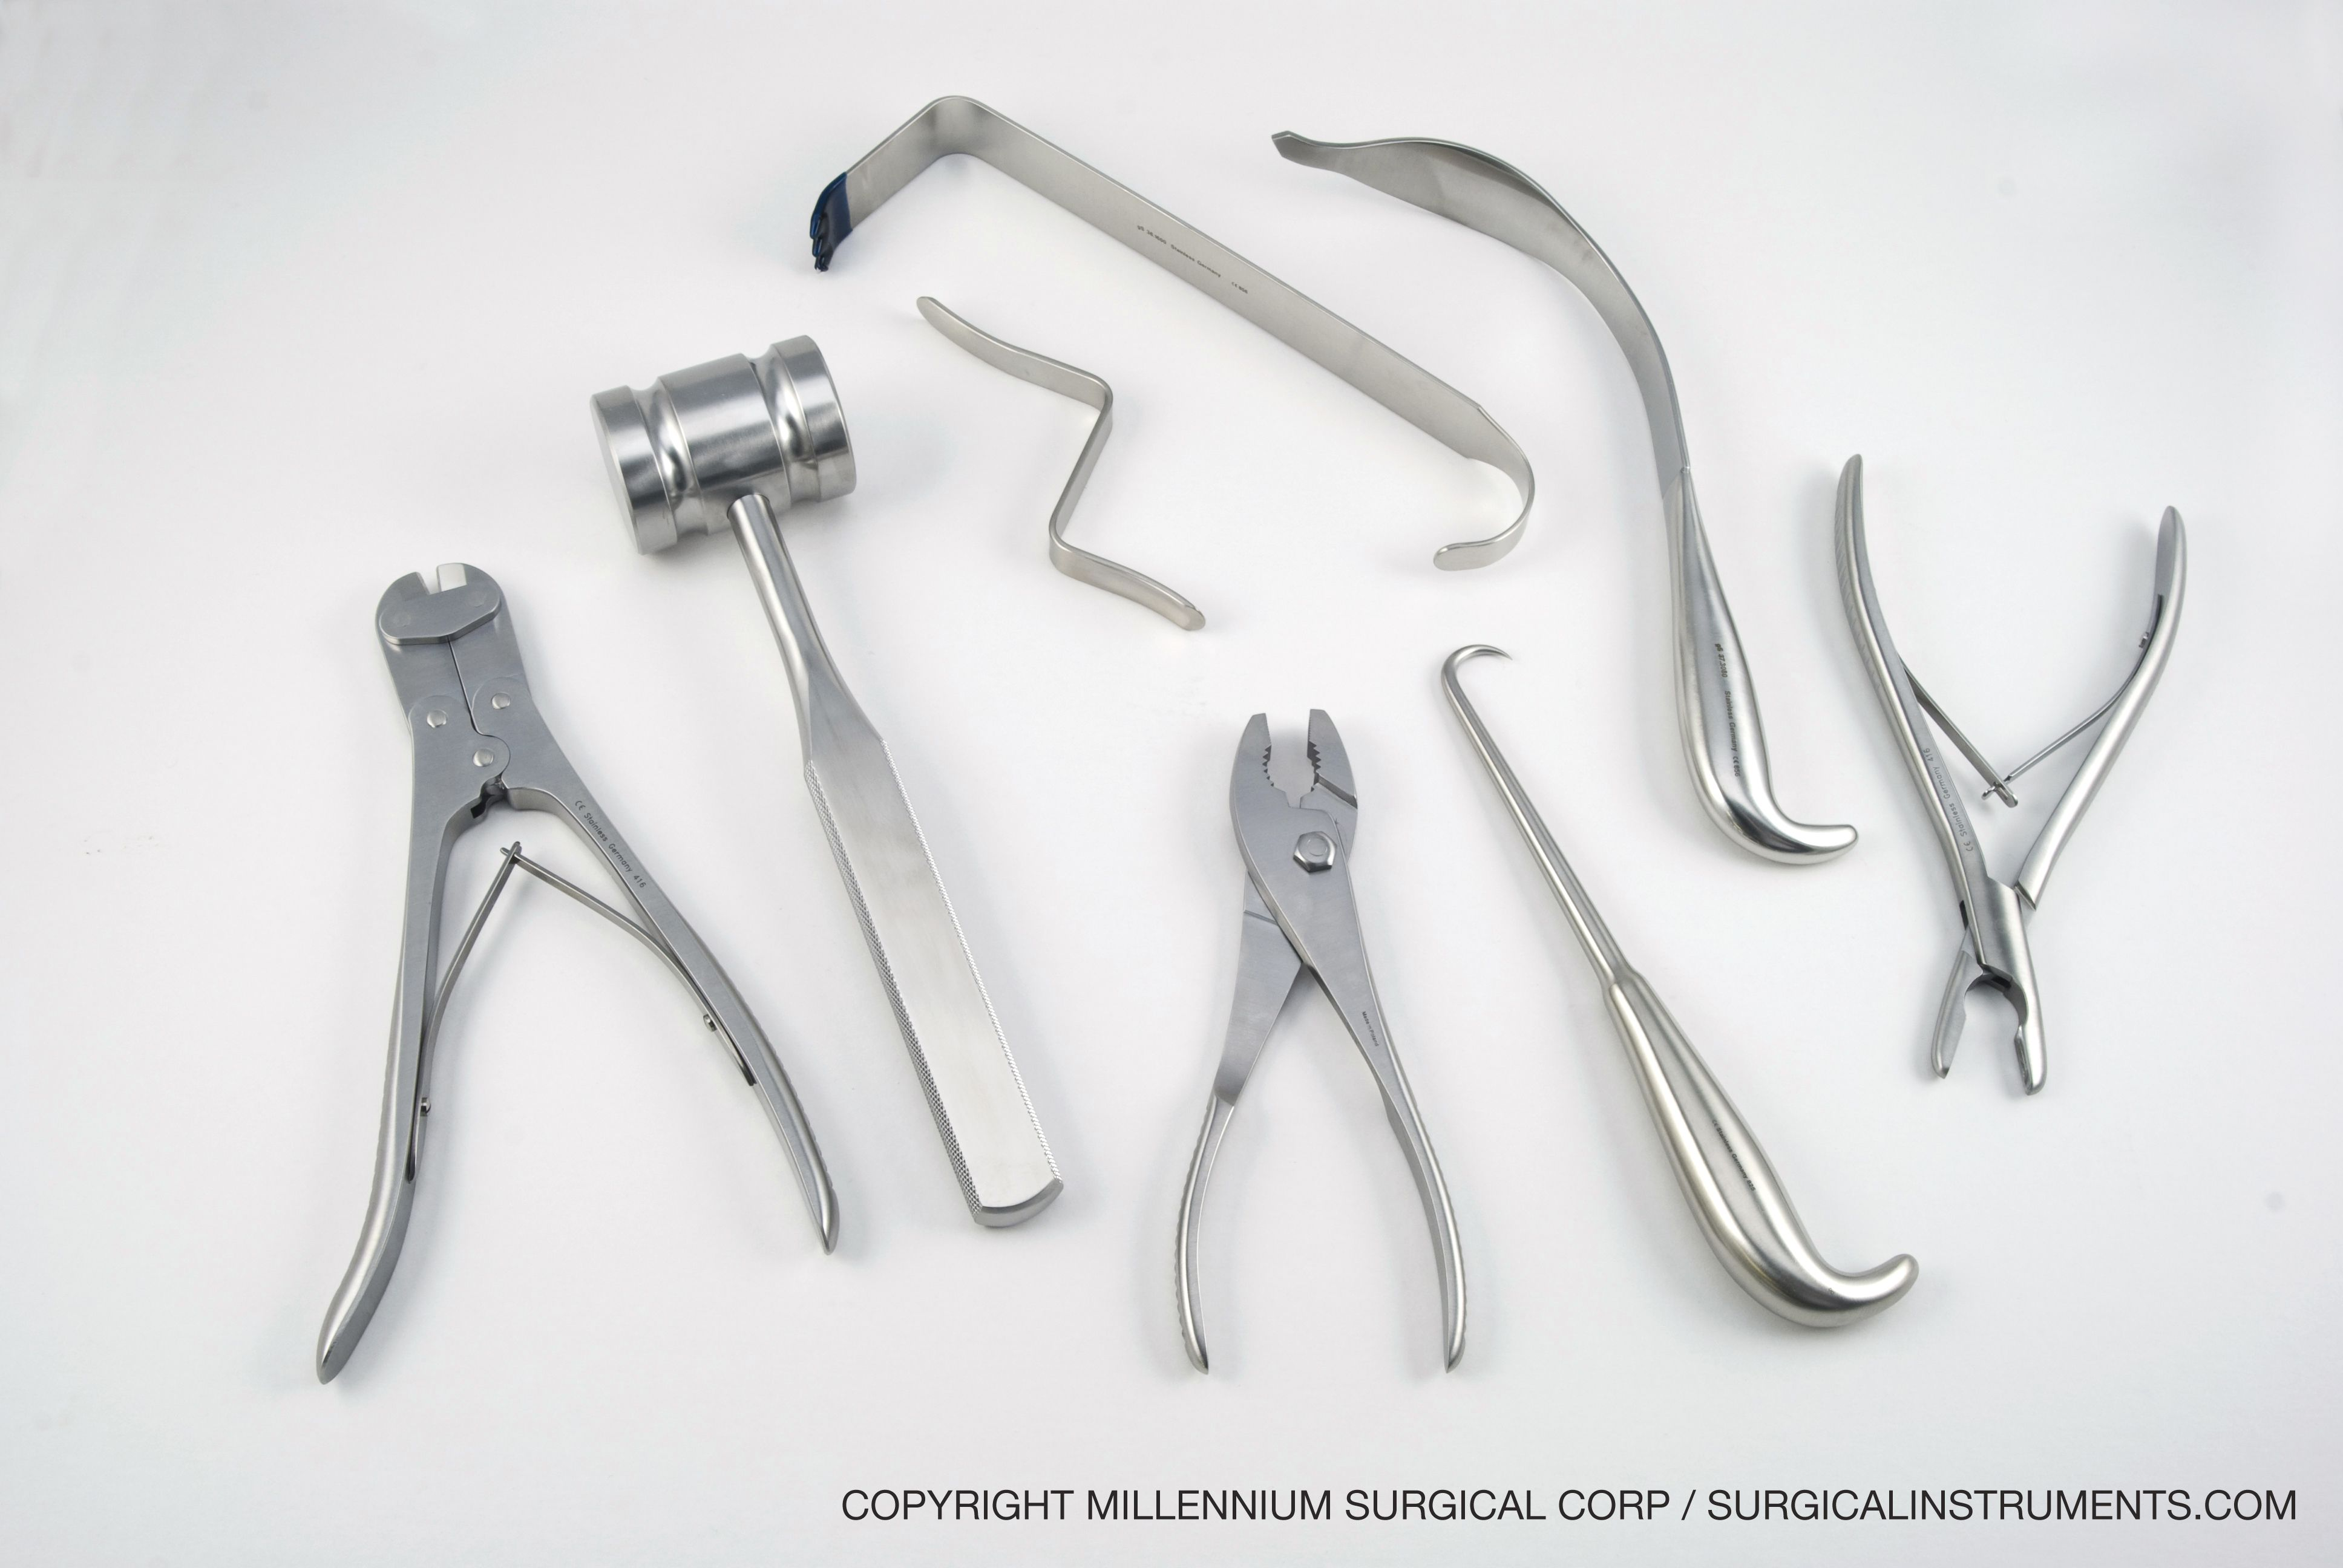 Hip and Knee Surgical Instruments | Surgical Instruments | Pinterest